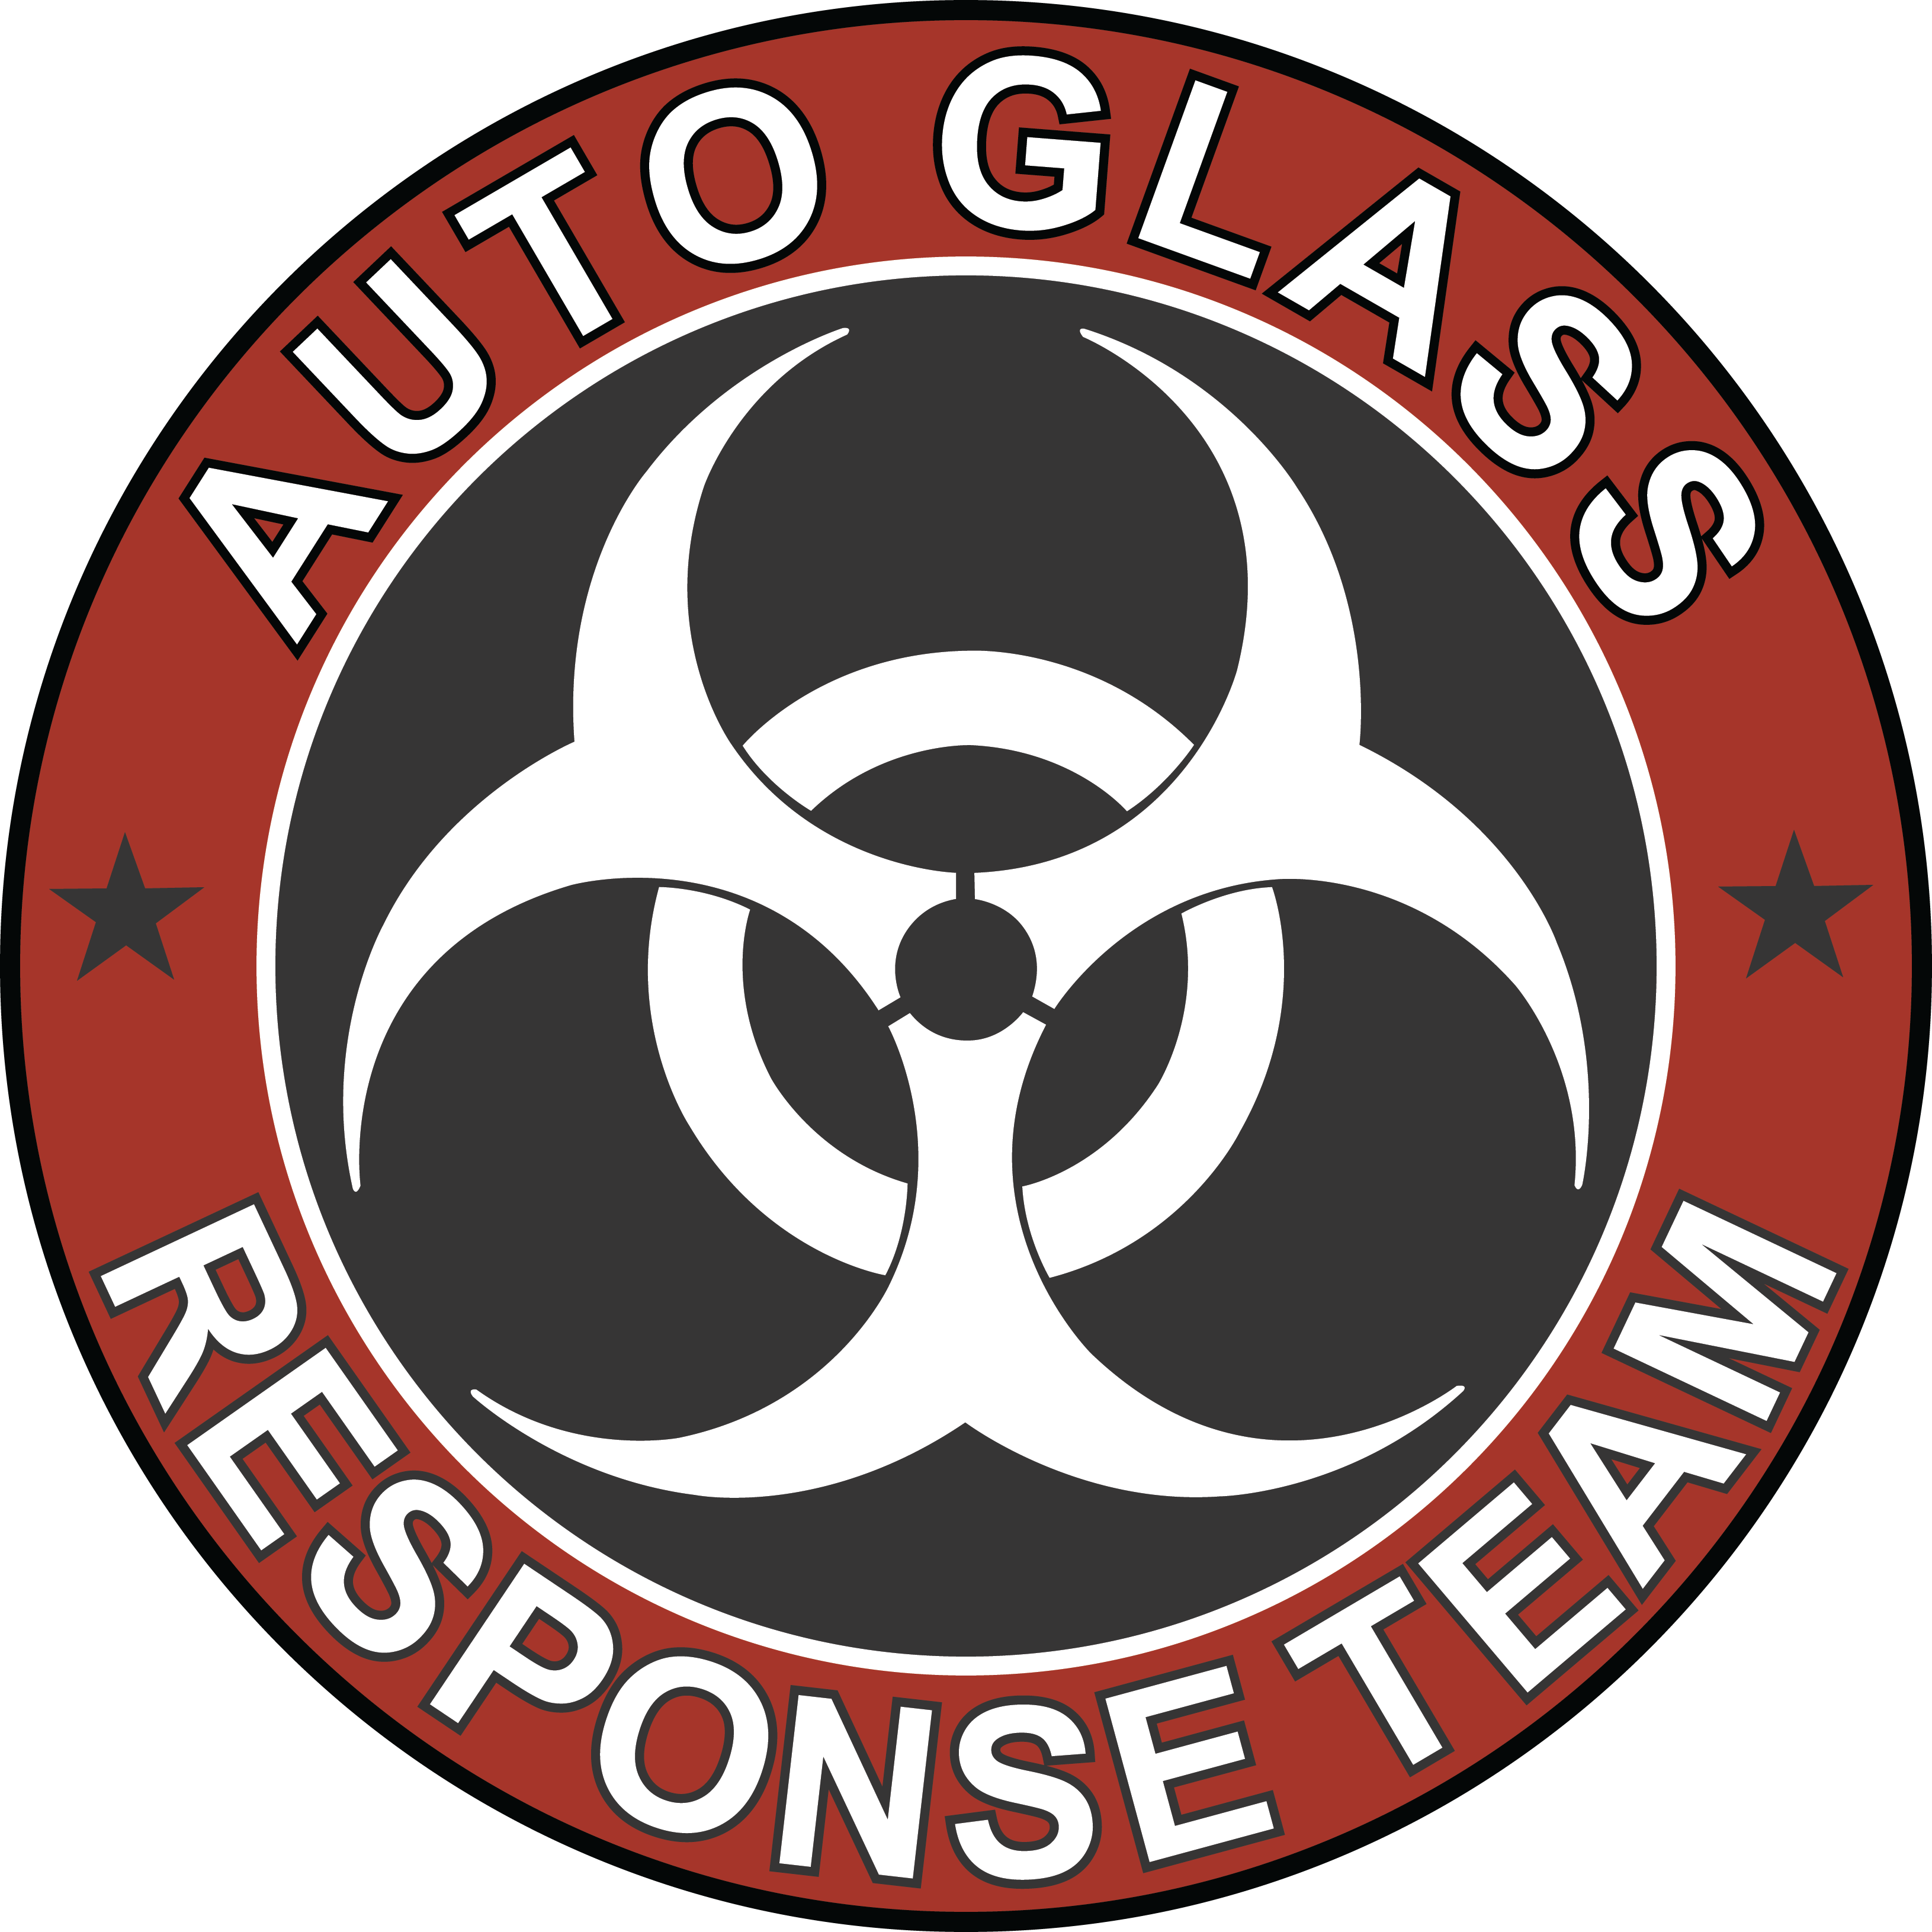 Windshield Replacement Service Auto Glass Repair Service Baltimore Md Auto Glass Response Team